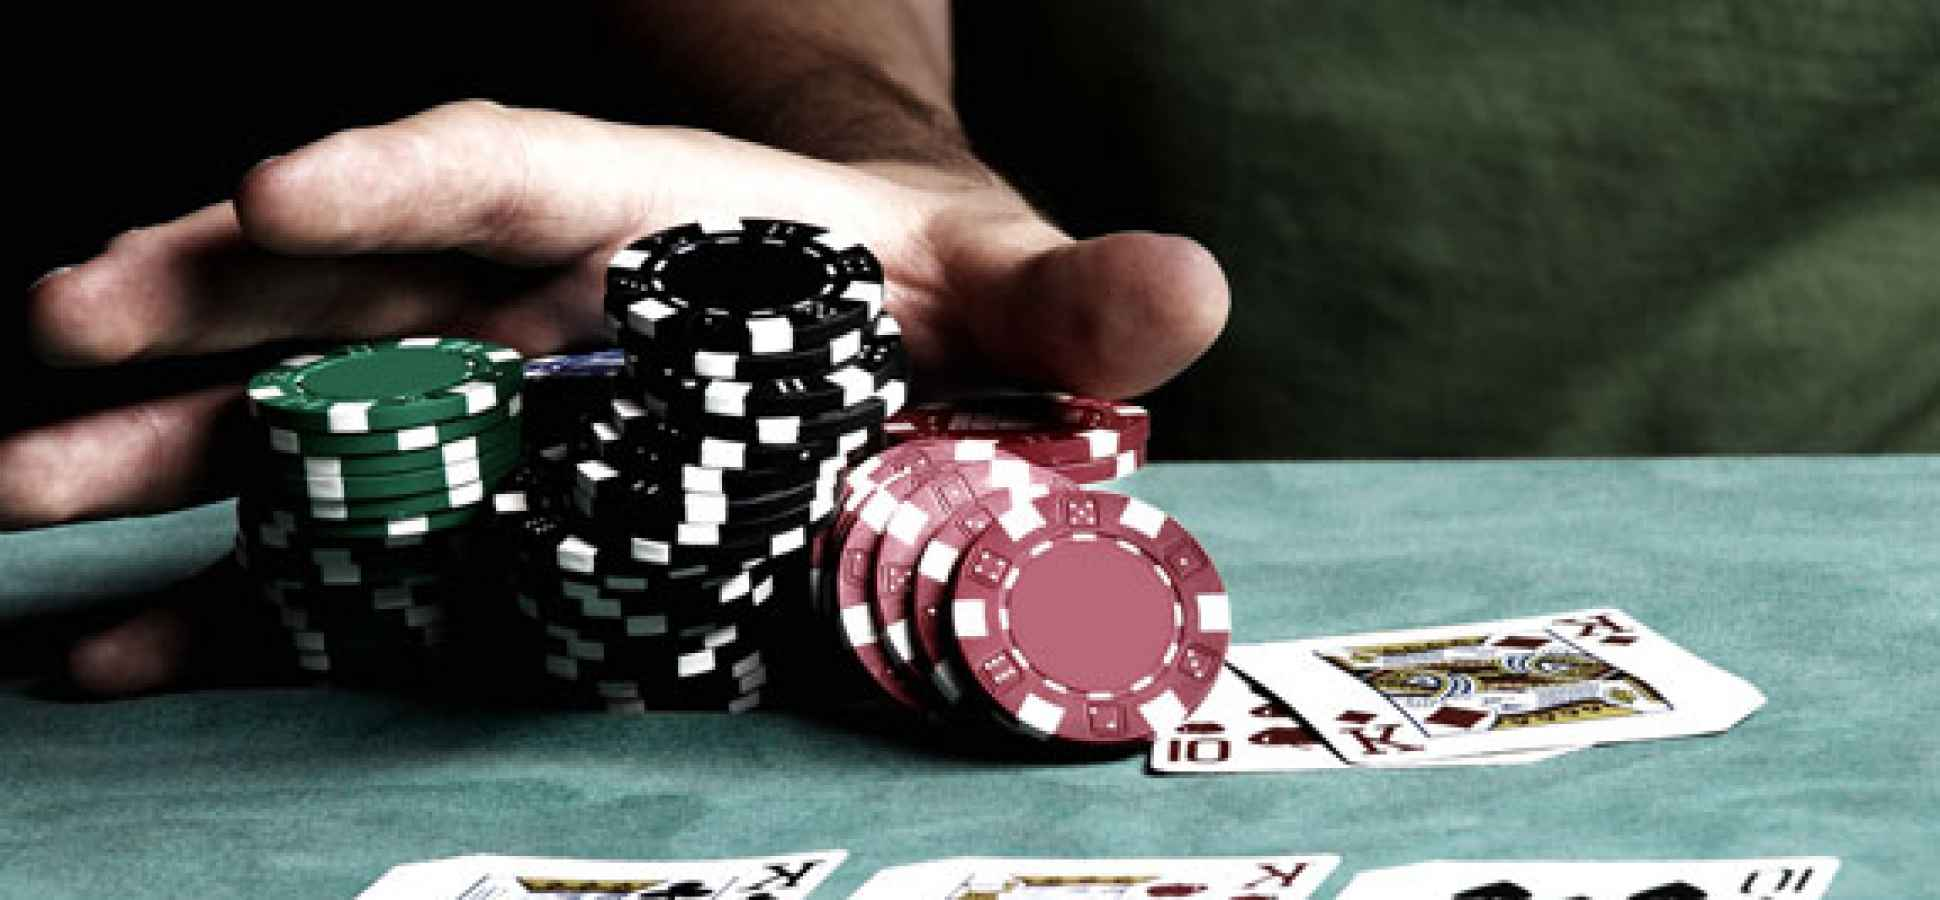 Gambling addiction and payday loans video game addiction and gambling addiction